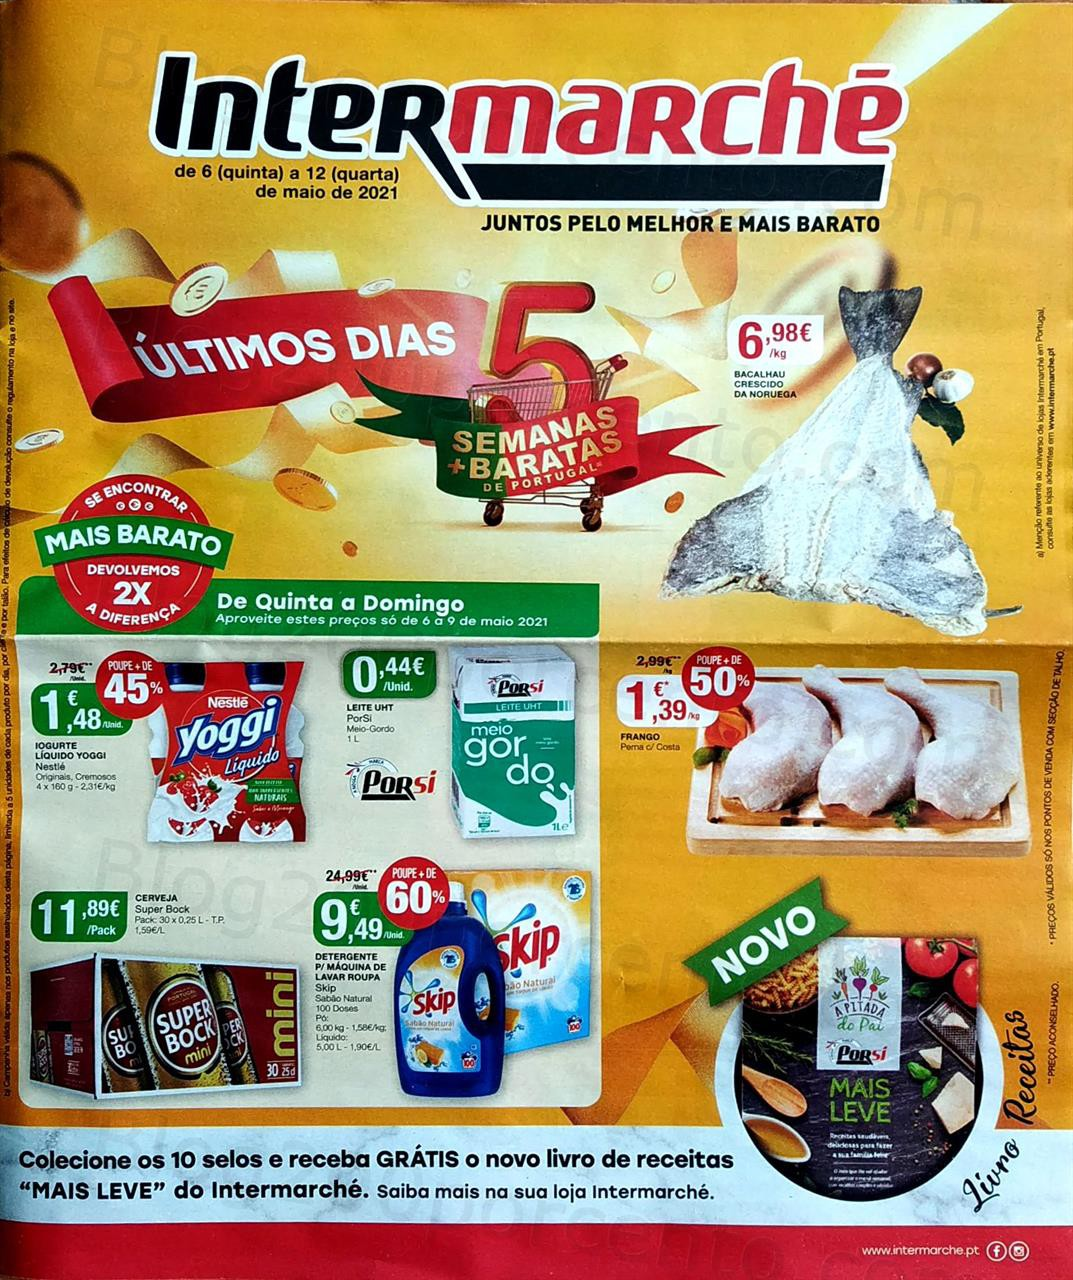 Intermarché contact 6 a 12 maio_1.jpg